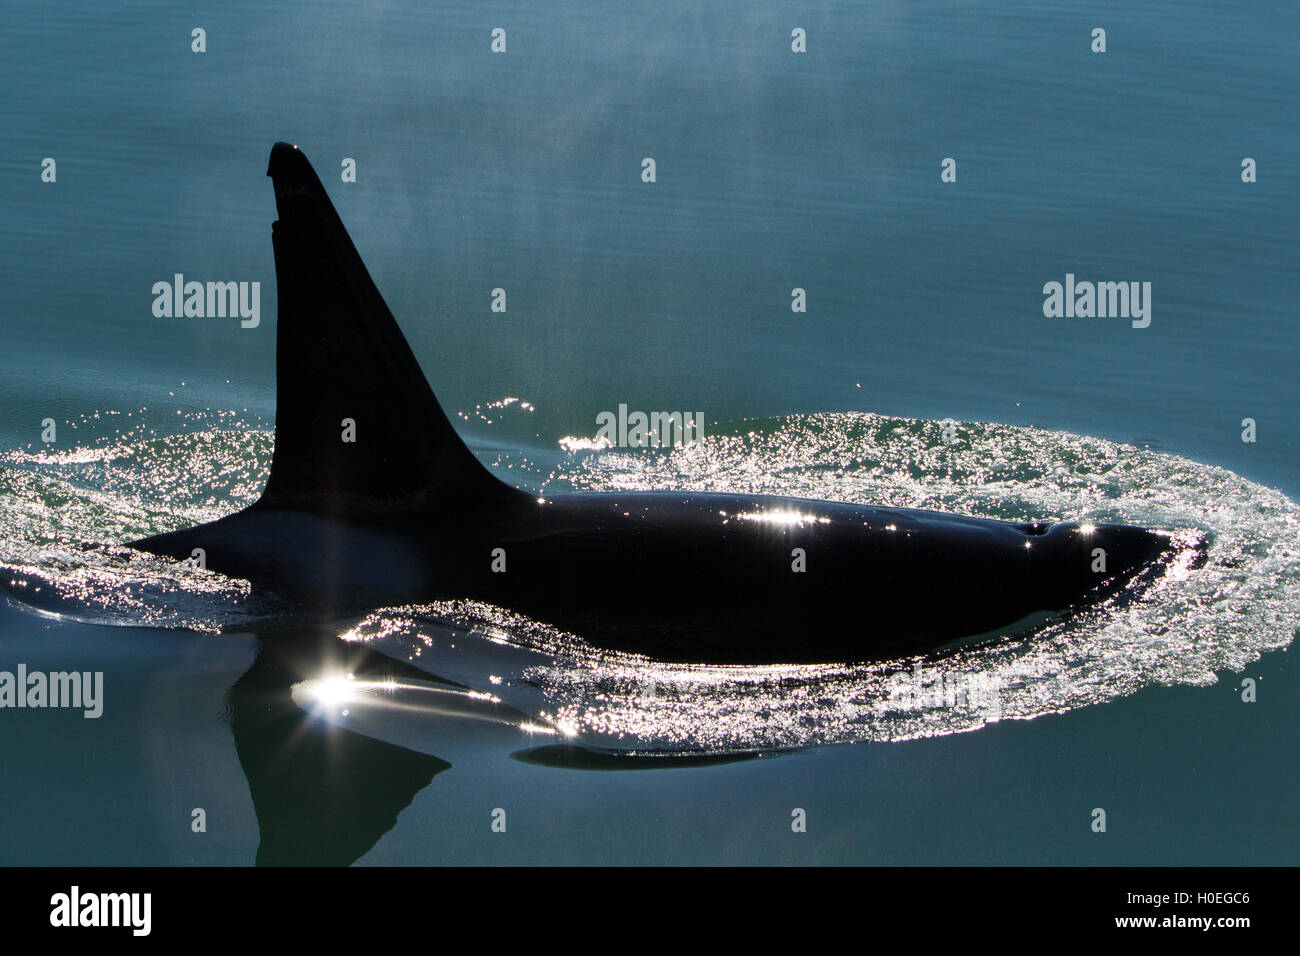 Male Transient Killer whale surfacing in Glacier Bay National Park - Stock Image